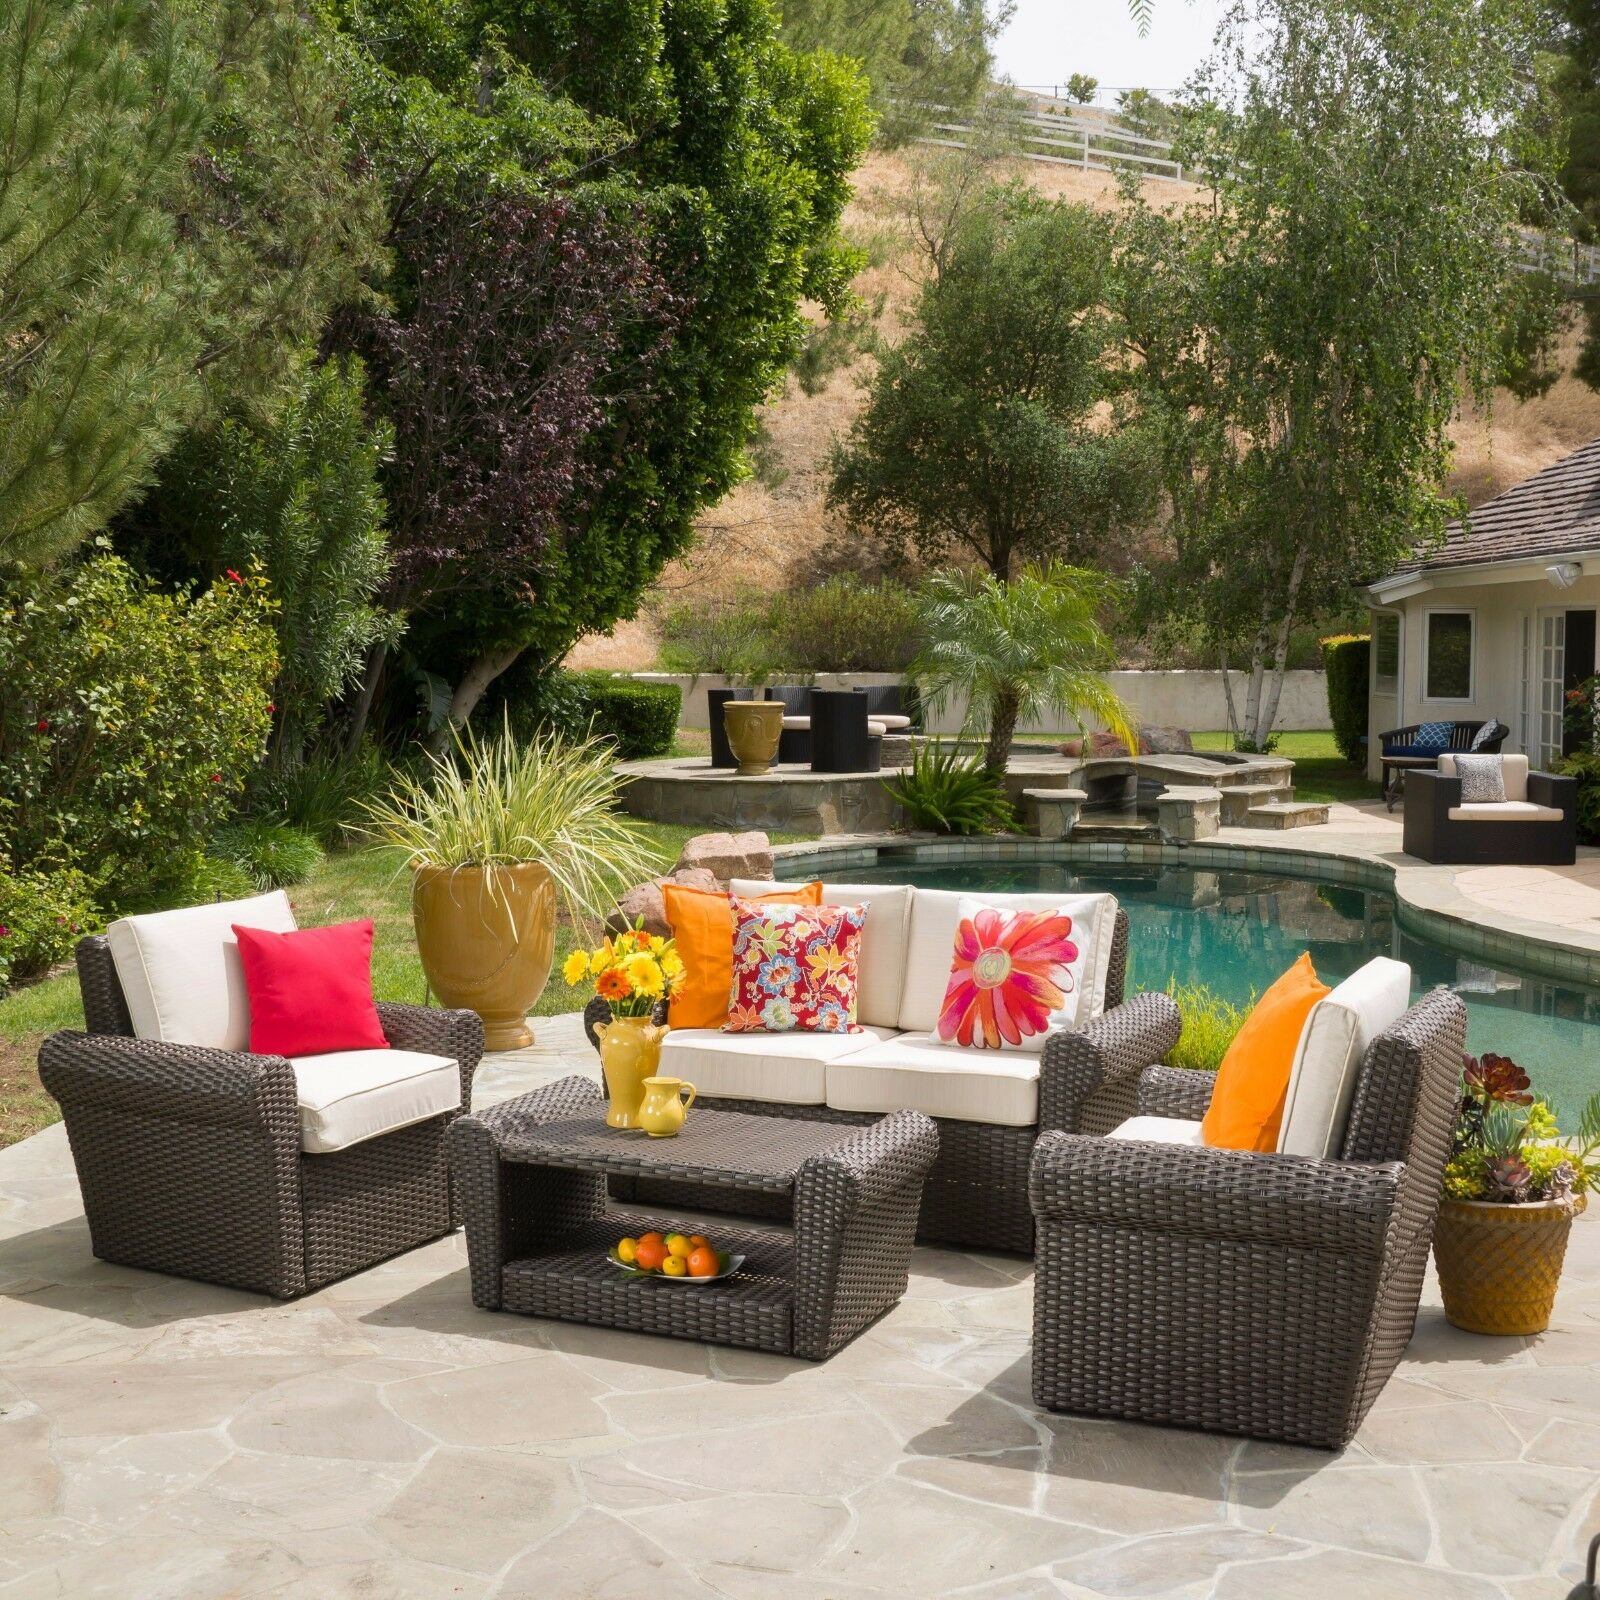 Patio Furniture Sets Clearance Outdoor 4 piece Wicker Chat Set